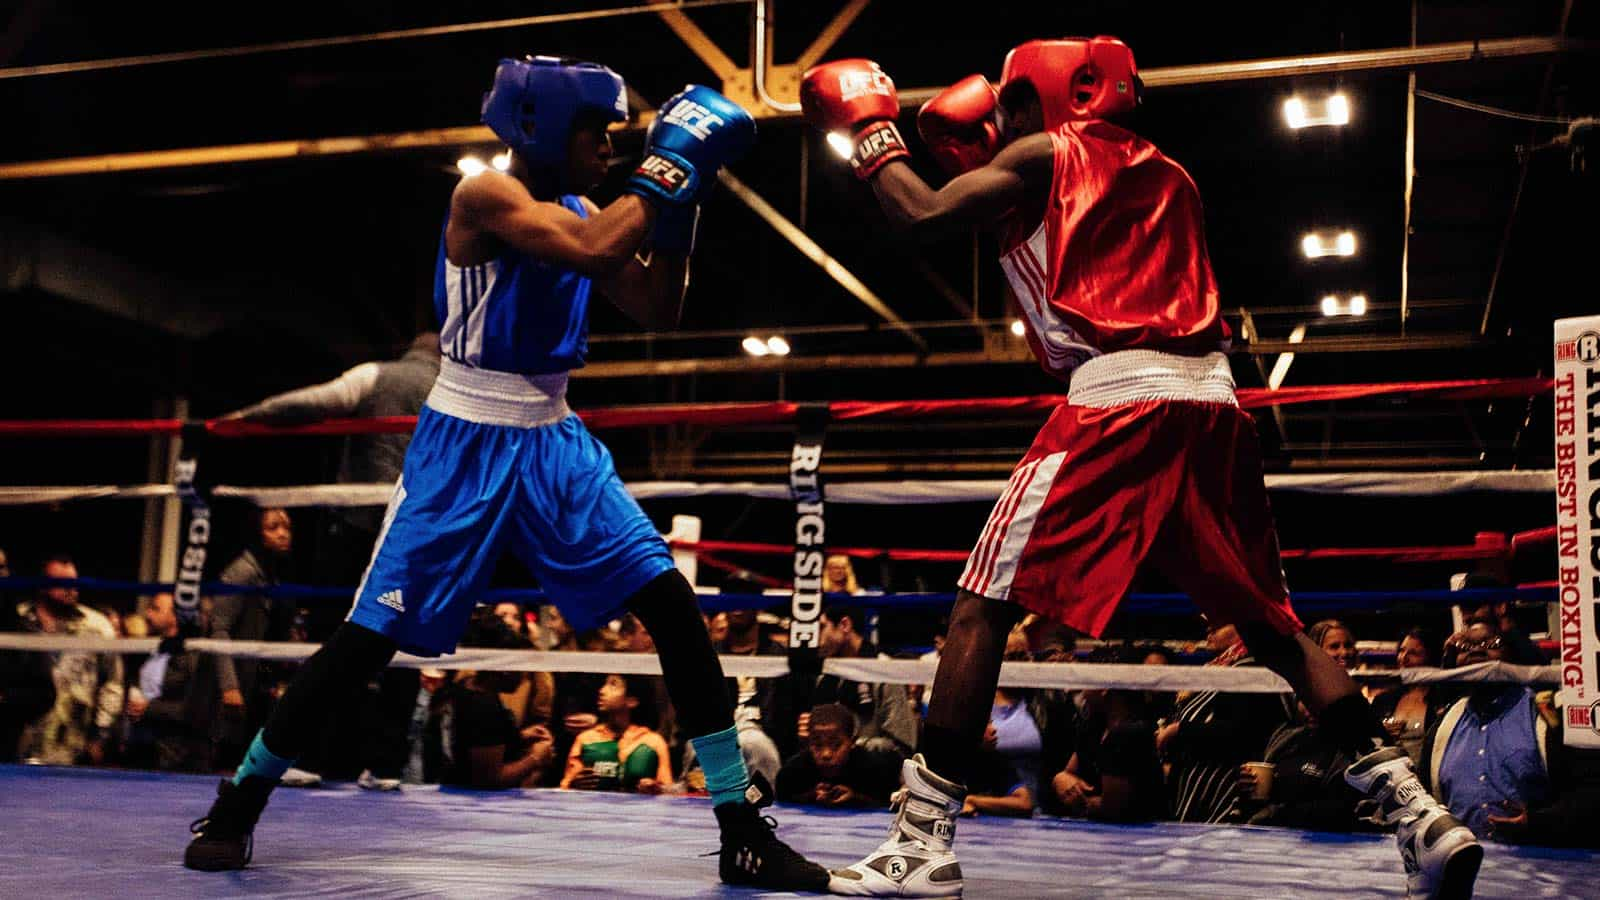 web design for downtown boxing gym youth program in detroit